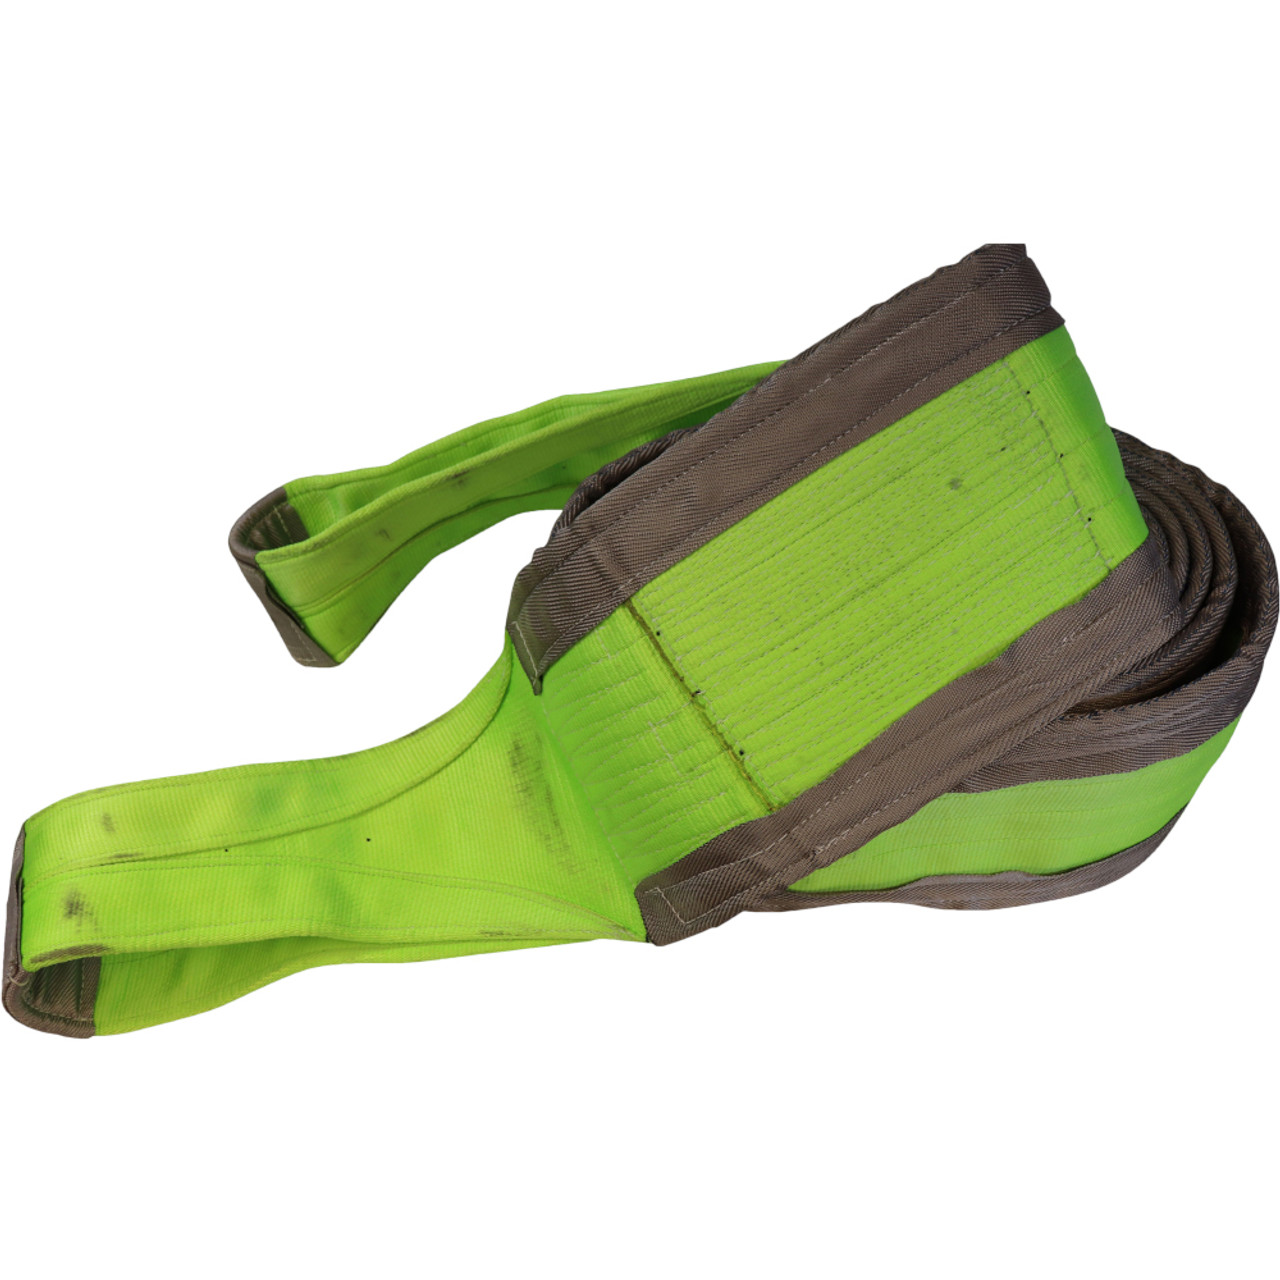 TS2-98xxxxCW - Cordura Edge Wrapped Two Ply Recovery Strap by all-Grip